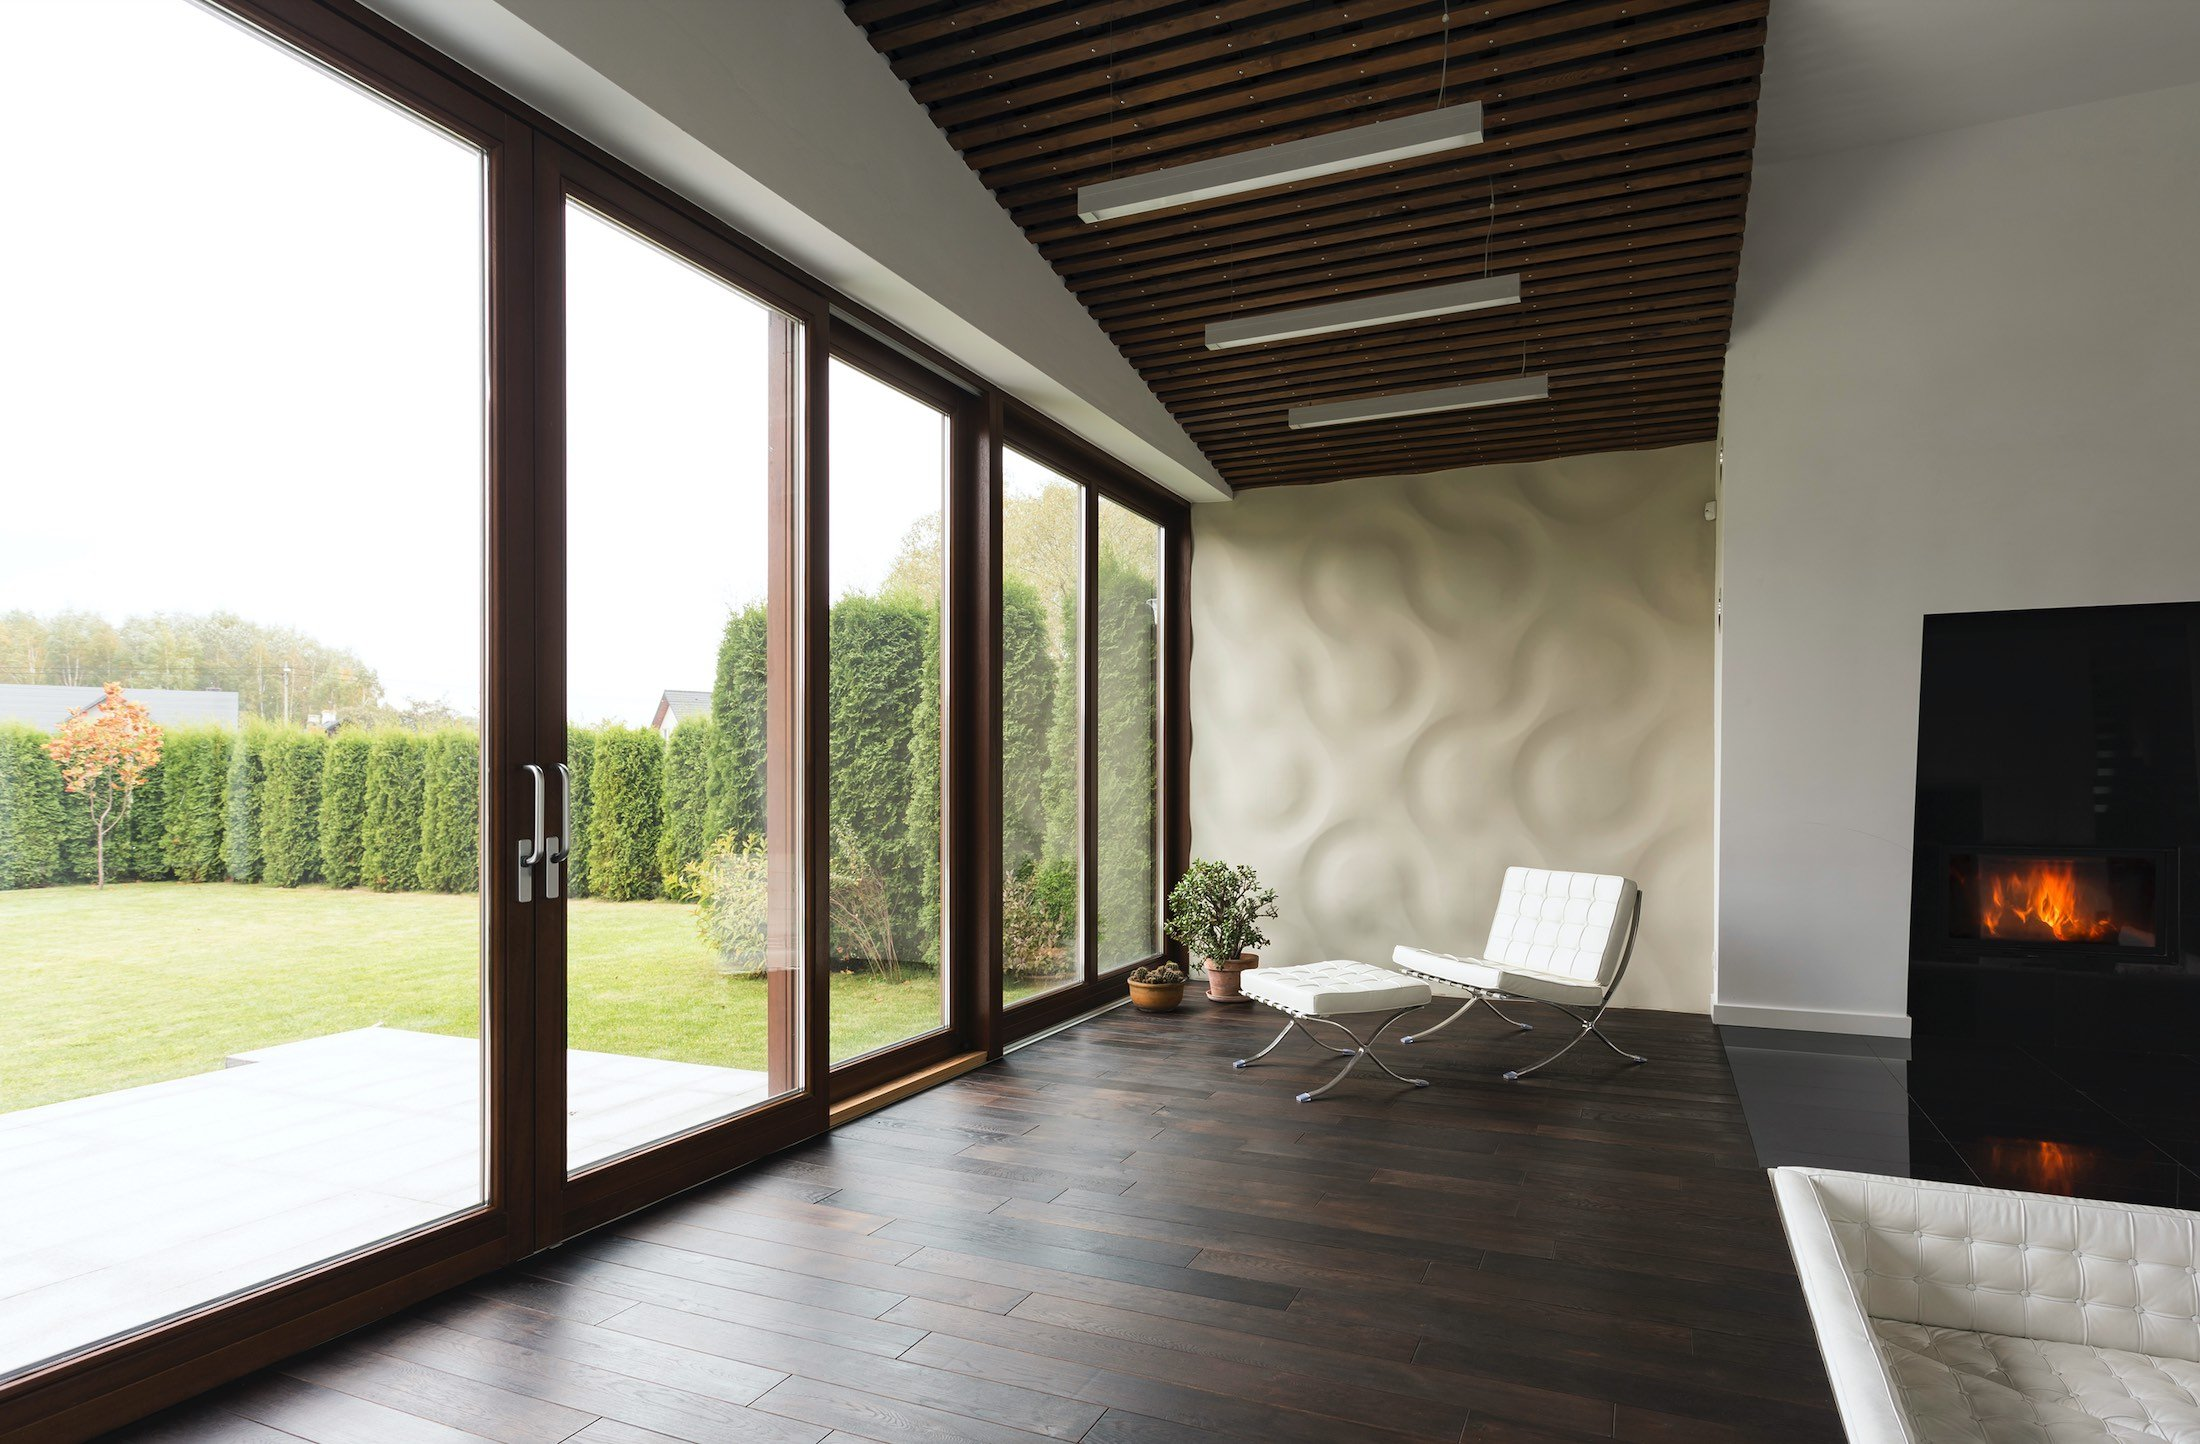 House Window Tint Useful Information And The Pros & Cons of Using It - Home Window Film in Denver, Colorado